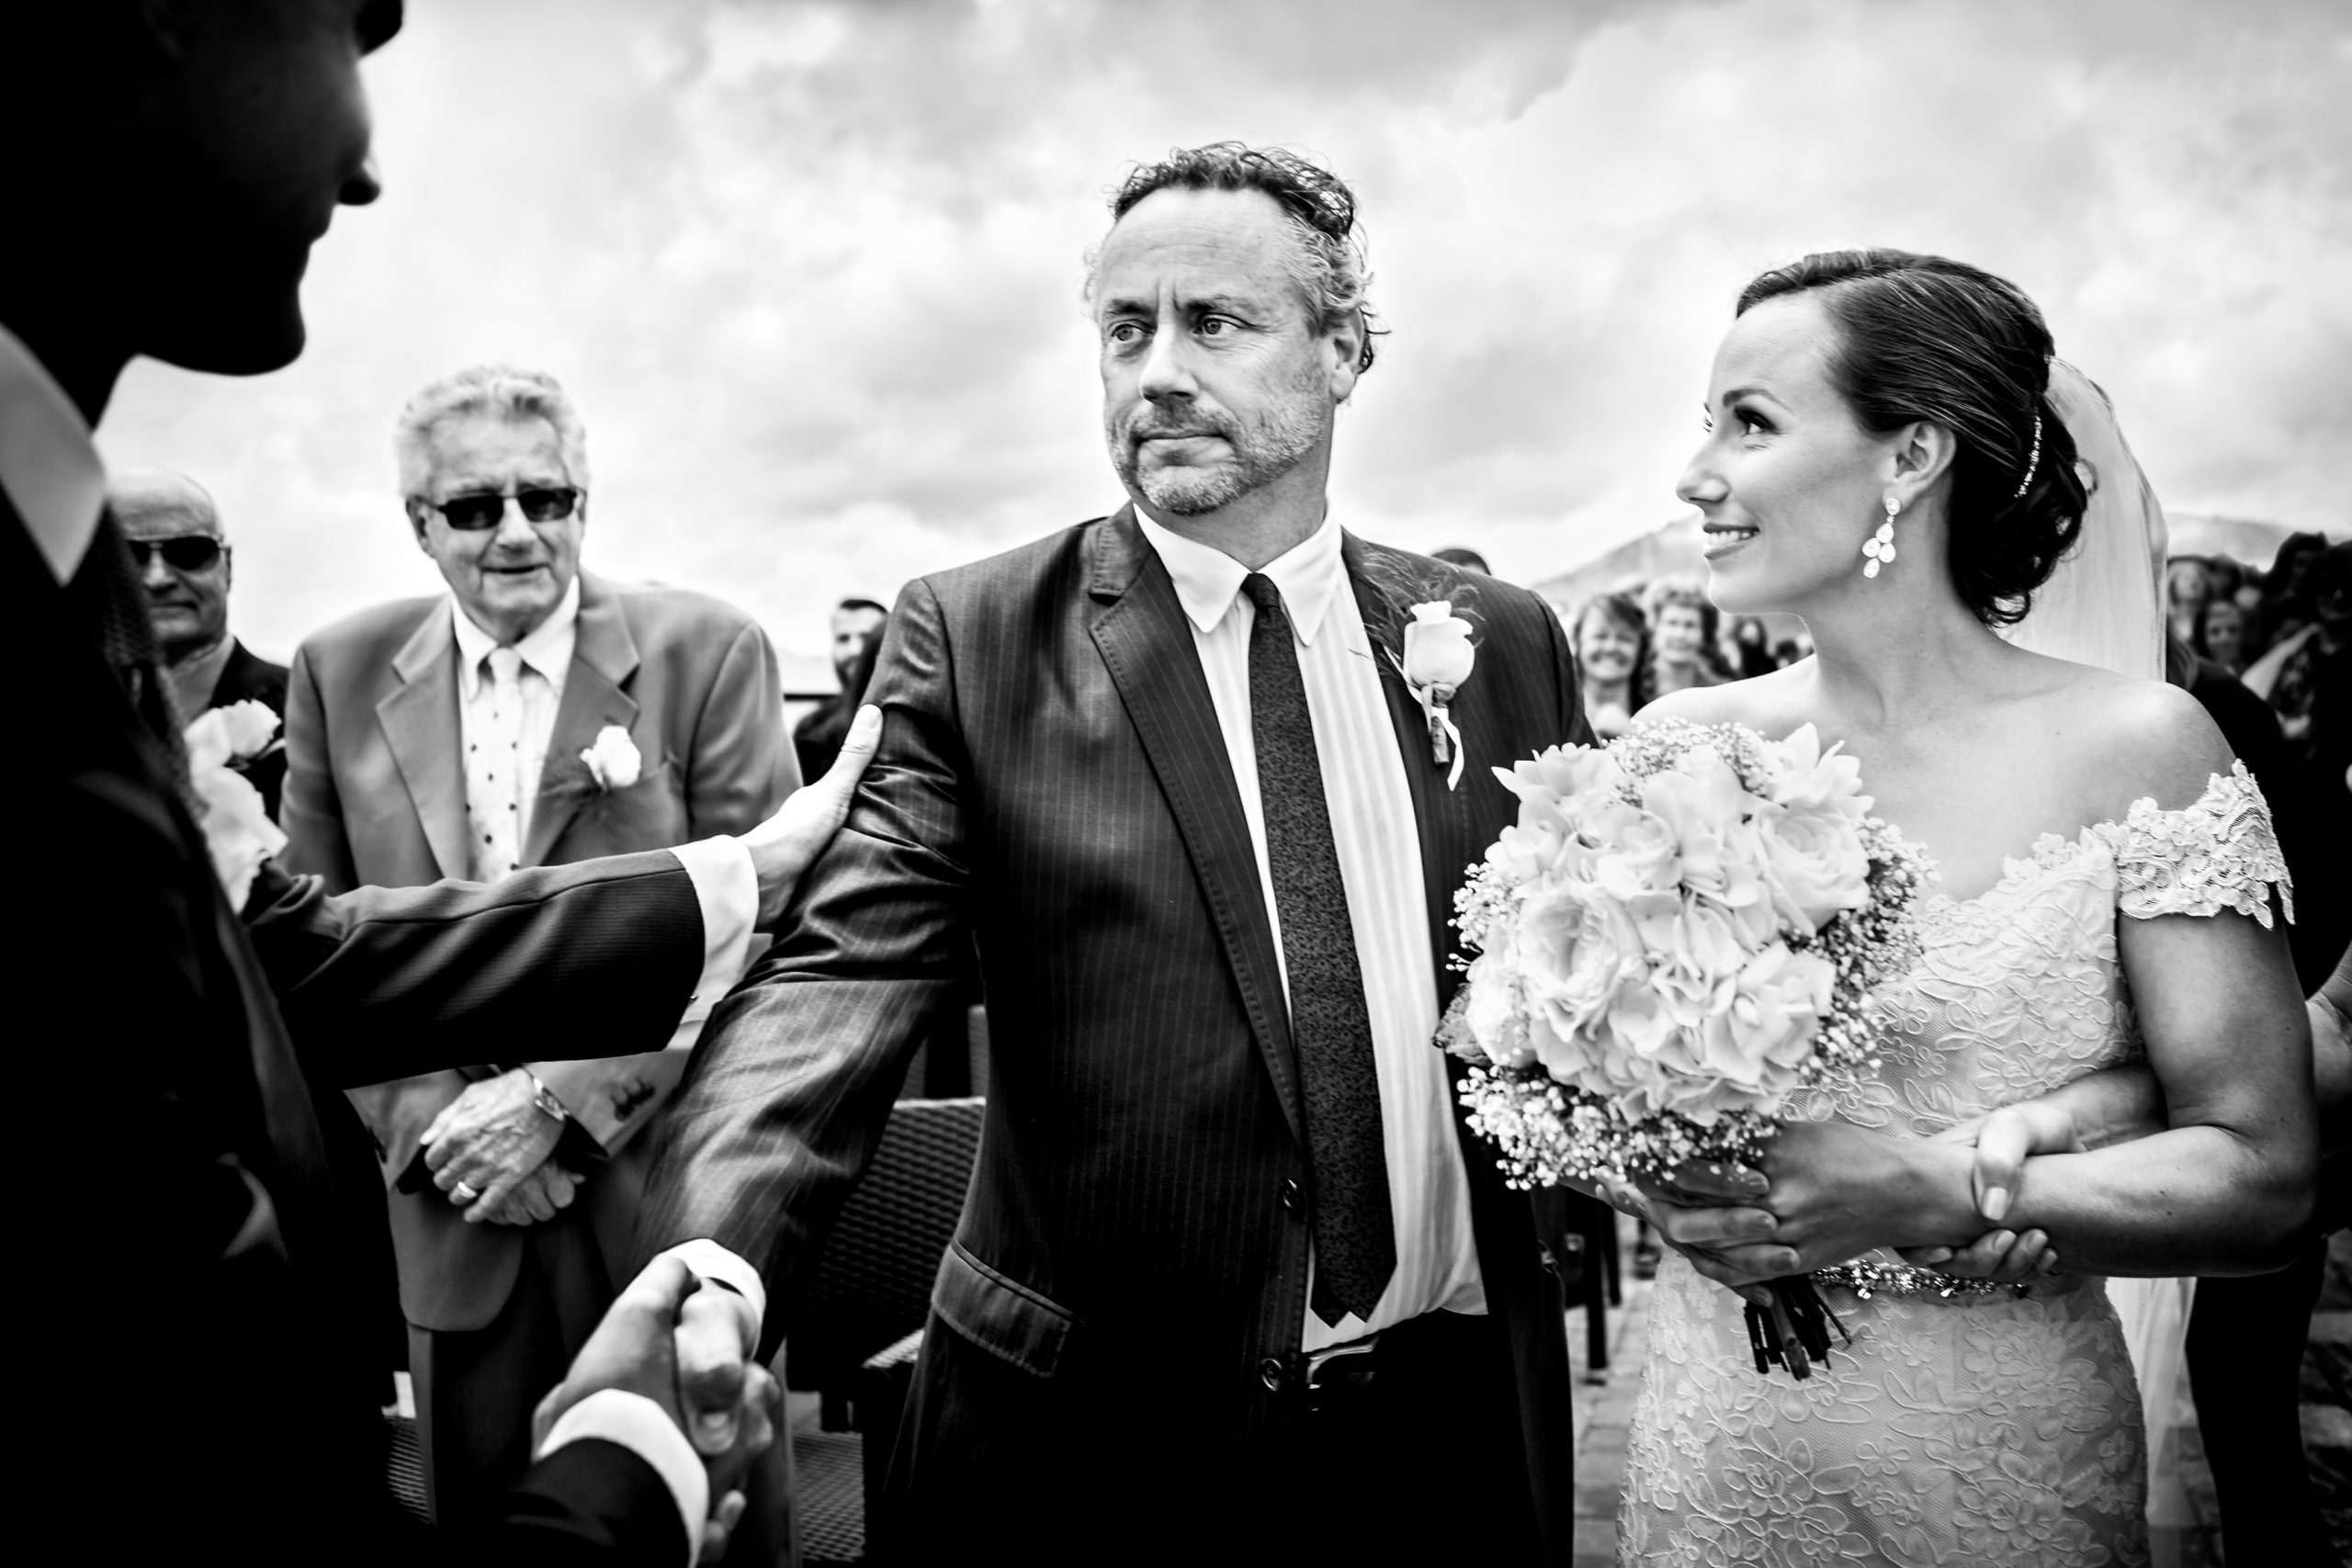 Father shakes the hand of the groom before handing off his daughter during a wedding ceremony